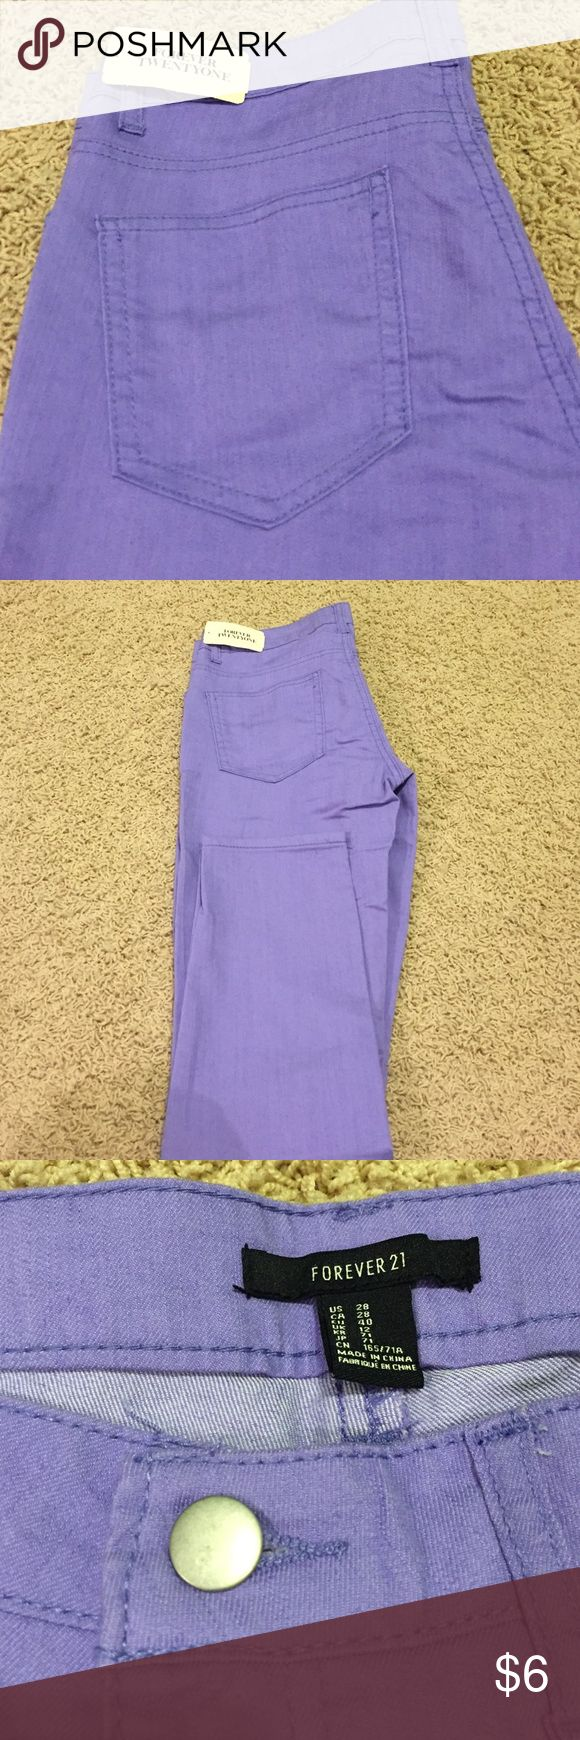 Lavender Jeans Never worn, new with tags Forever 21 Jeans Skinny